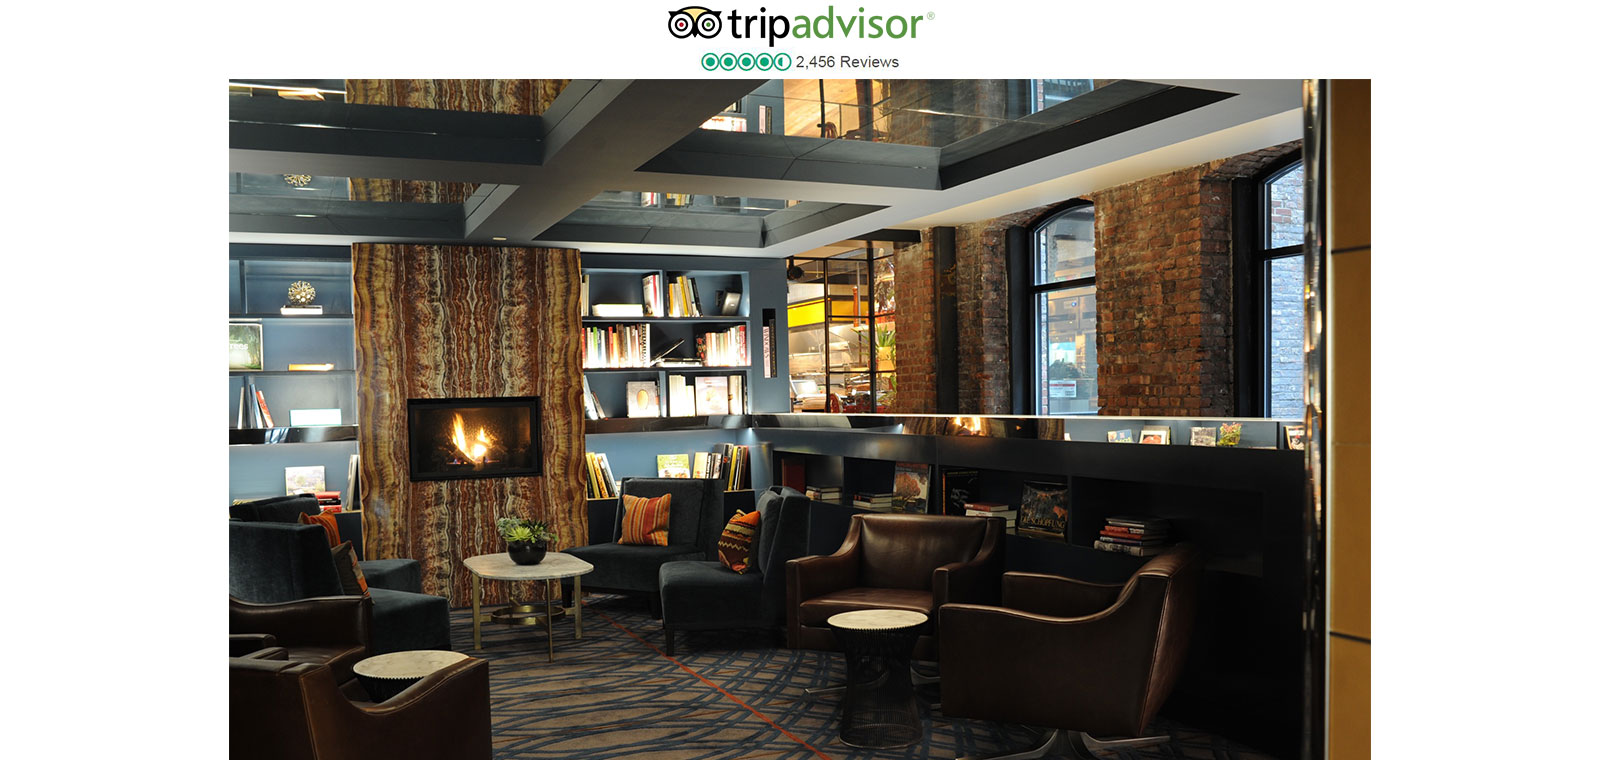 TripAdvisor Logo And Park South Lobby With Fireplace